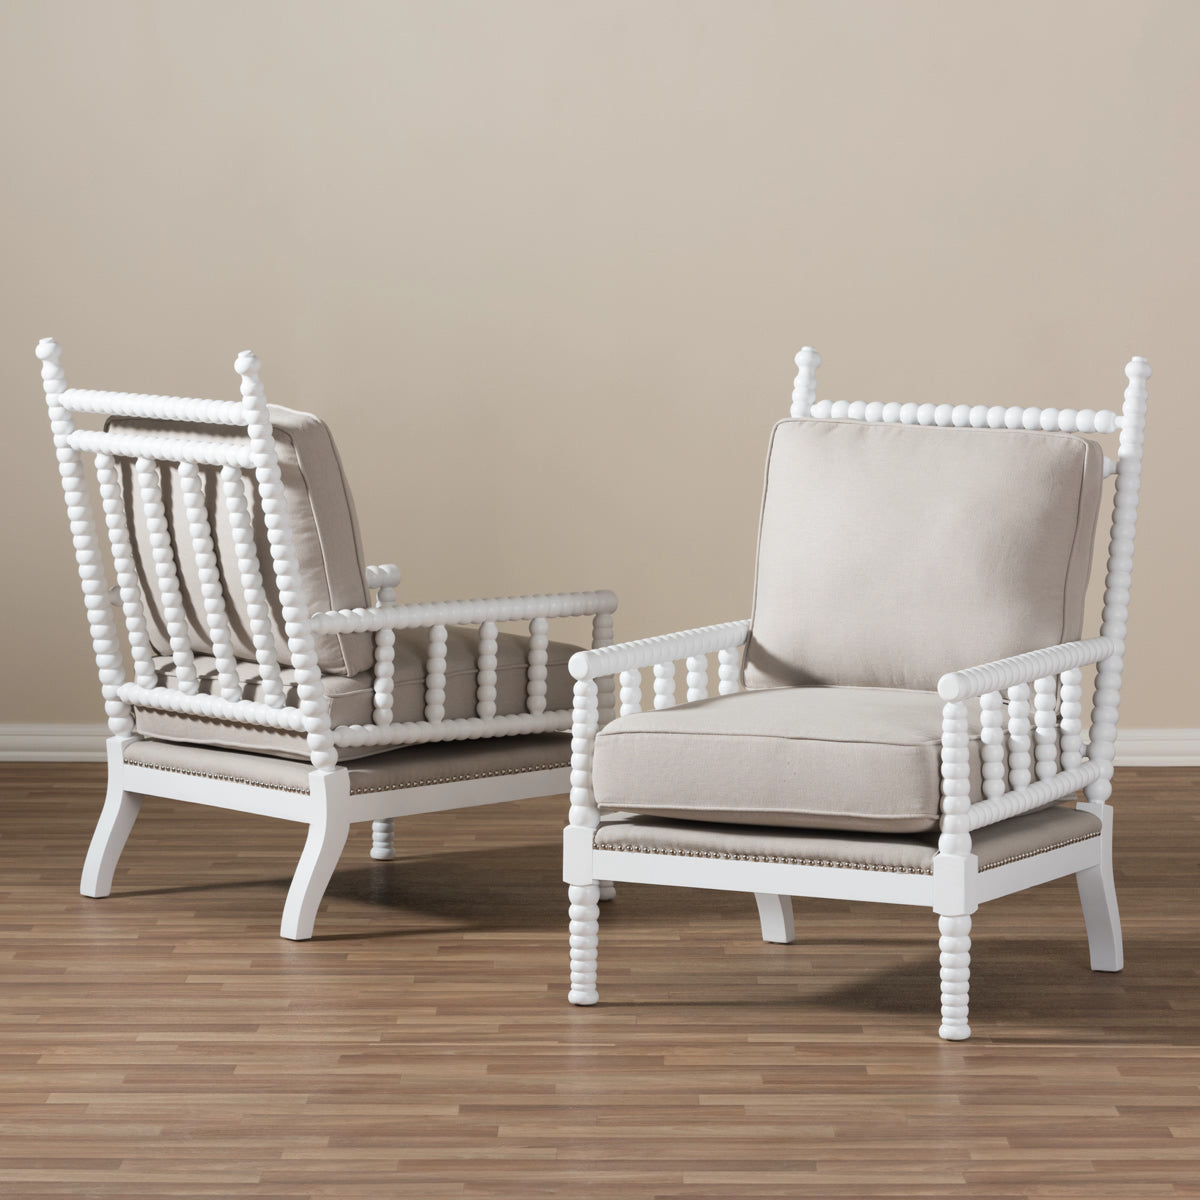 Stupendous Baxton Studio Hillary Beige White Wood Spindle Back Accent Chair Set Of 2 Gamerscity Chair Design For Home Gamerscityorg